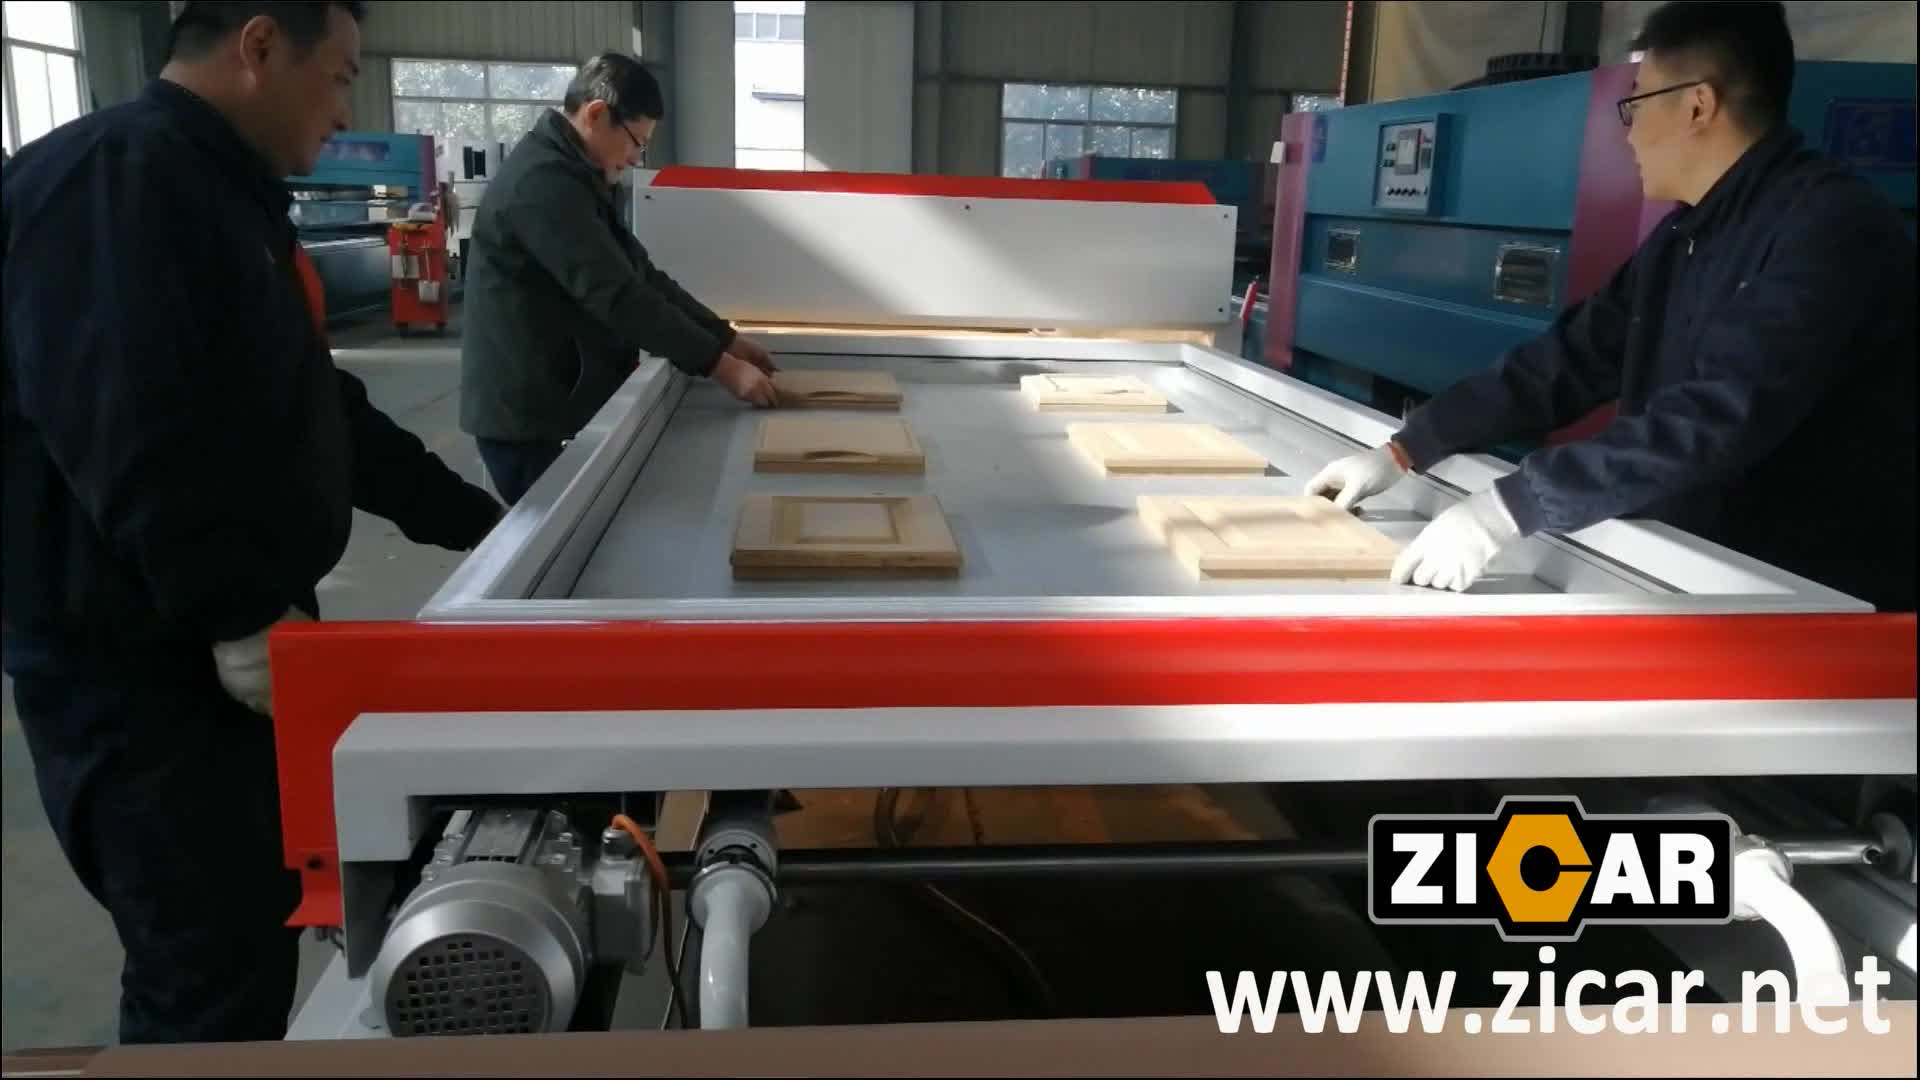 ZICAR TM2480 PVC Foil Vacuum Membrane Press Machine